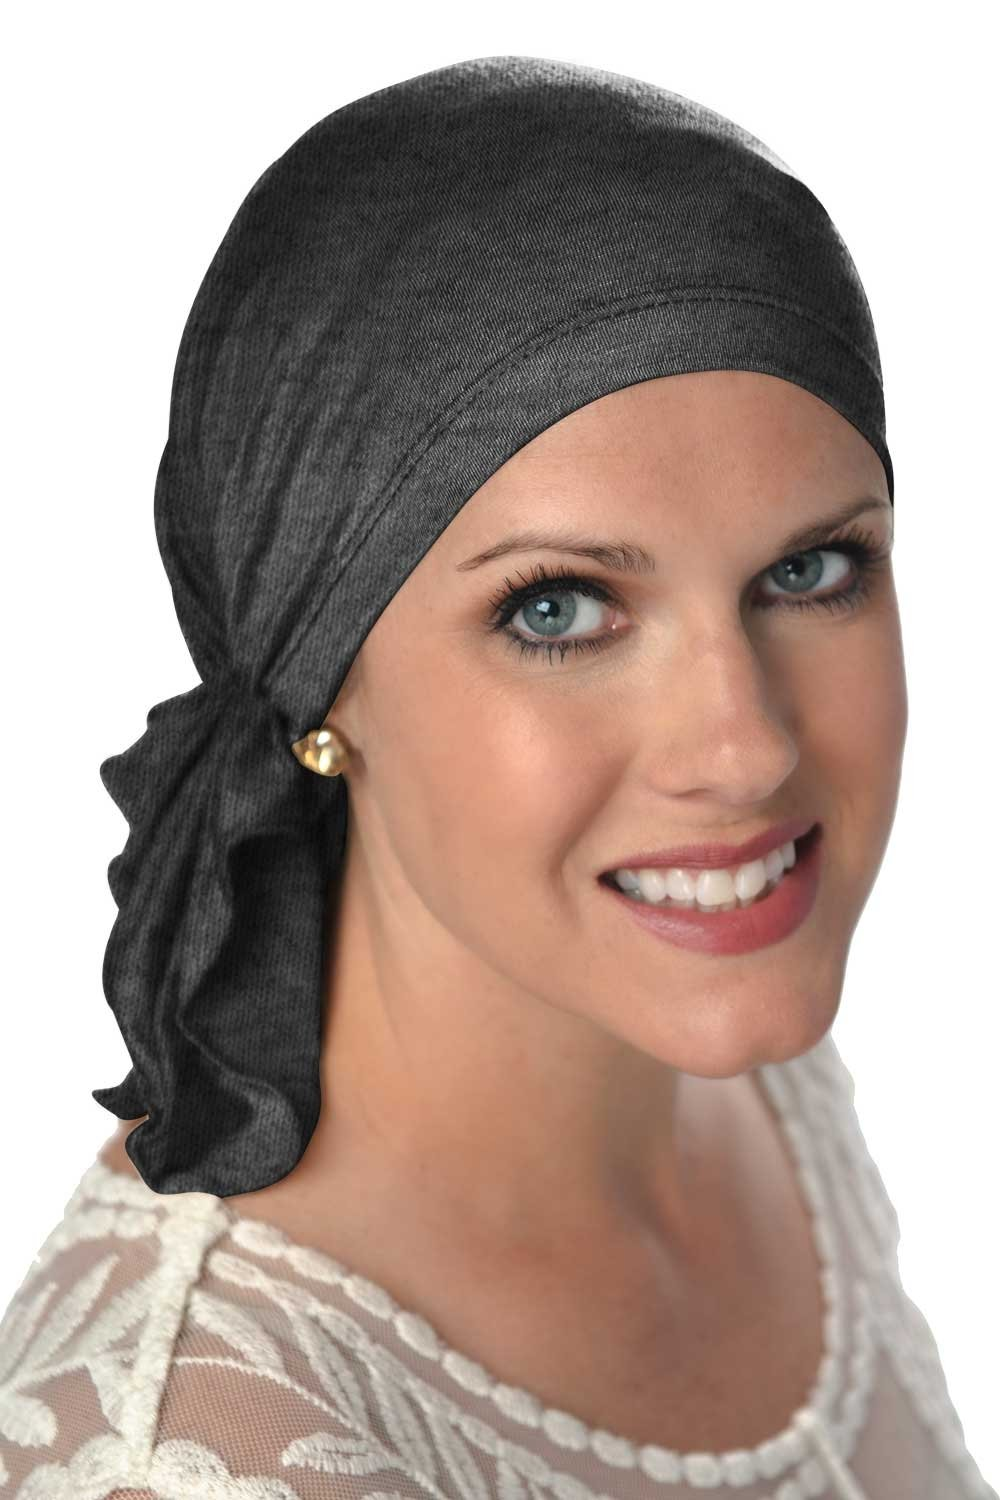 Slip-On™ Scarf- Caps for Women with Chemo Cancer Hair Loss Charcoal Headcovers Unlimited SV-70062A-CHR